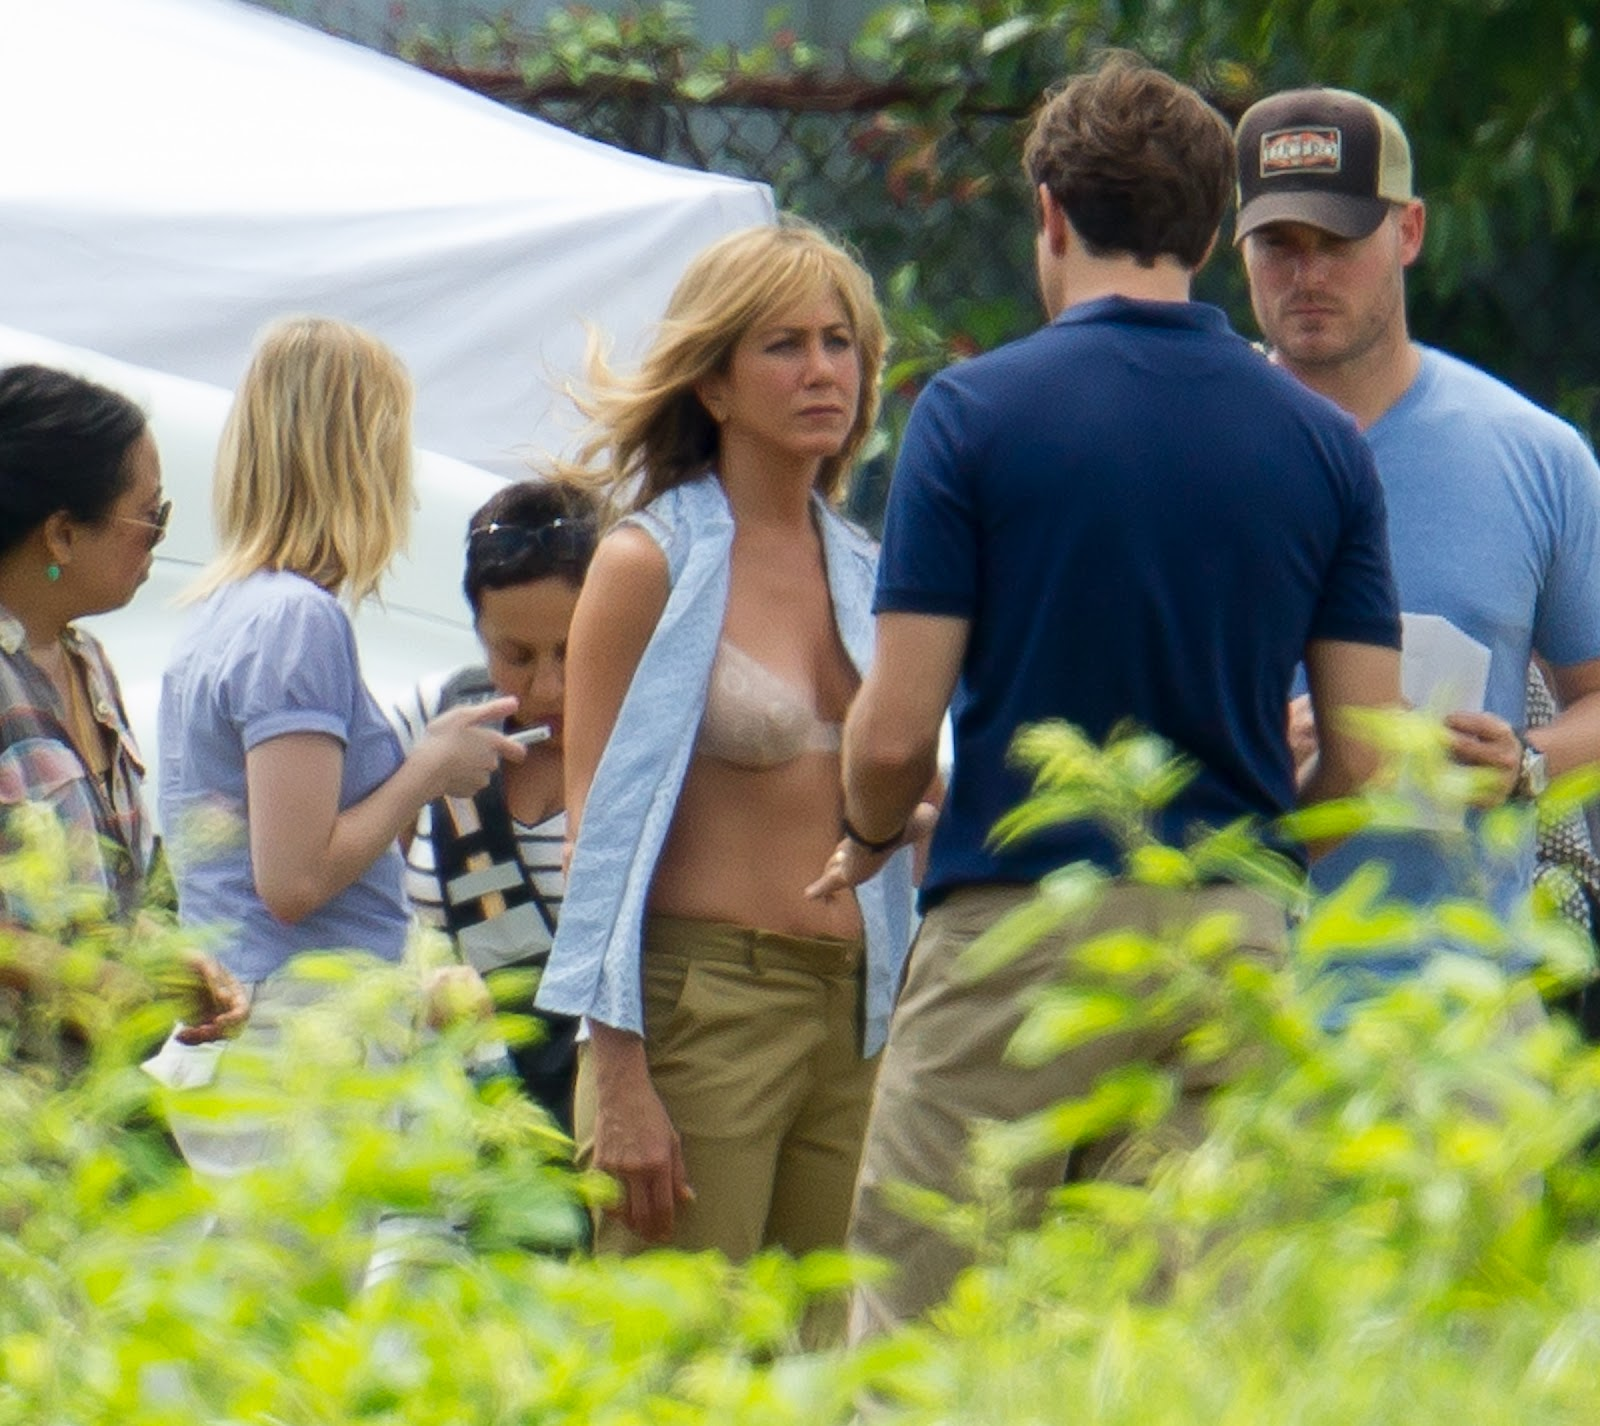 http://4.bp.blogspot.com/-8Po0h3NVxQg/UEeW_-_I9tI/AAAAAAAAIeo/Lu79byQCfHg/s1600/jennifer_aniston_in_a_bra_on_the_set_of_we_re_the_millers_in_wilmington_Ejz3vuC.jpg